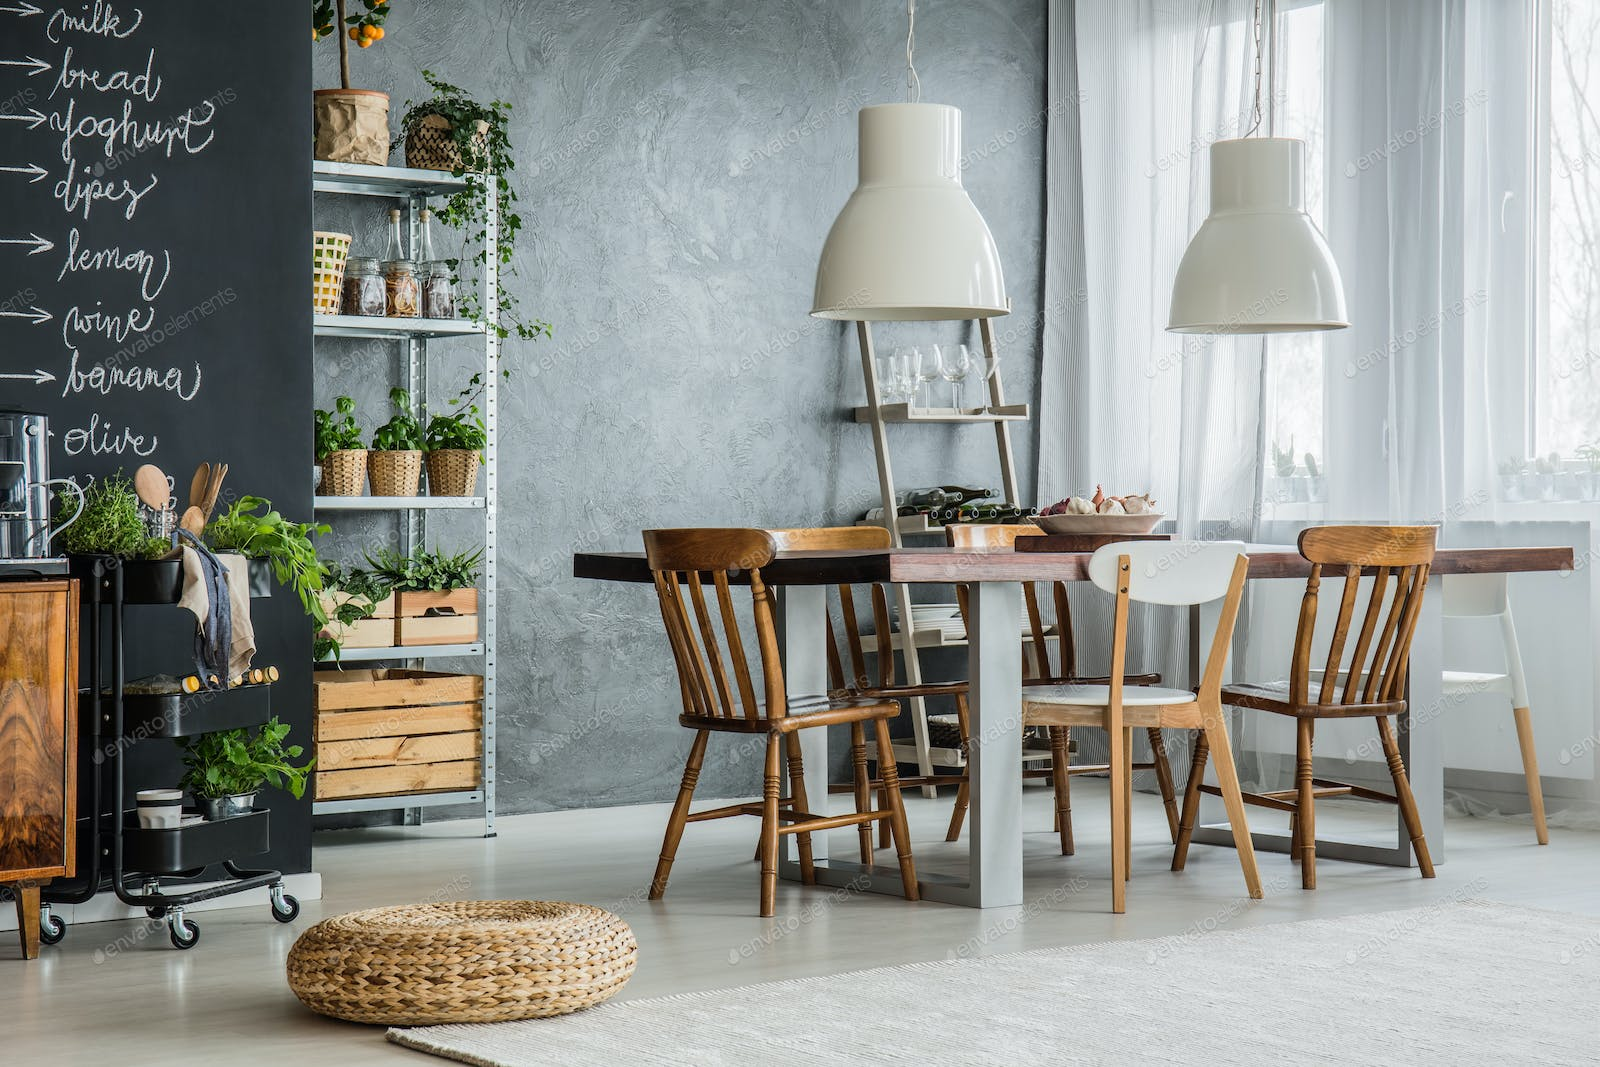 All The Templates You Can Download On Envato Elements - Chalkboard accents dining rooms